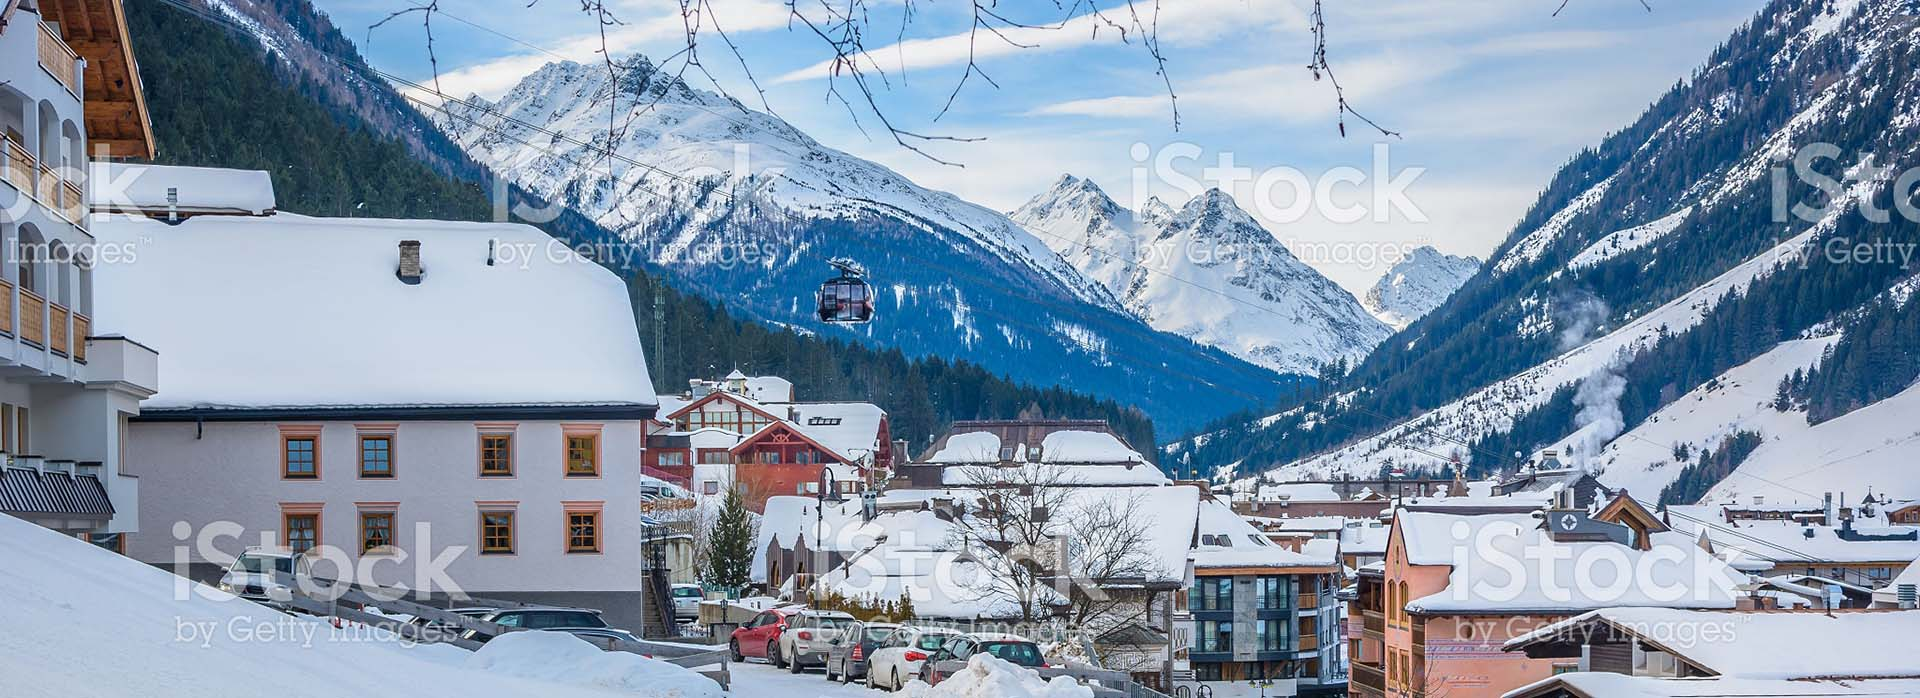 24th Annual Luxury Real Estate European Ski Trip